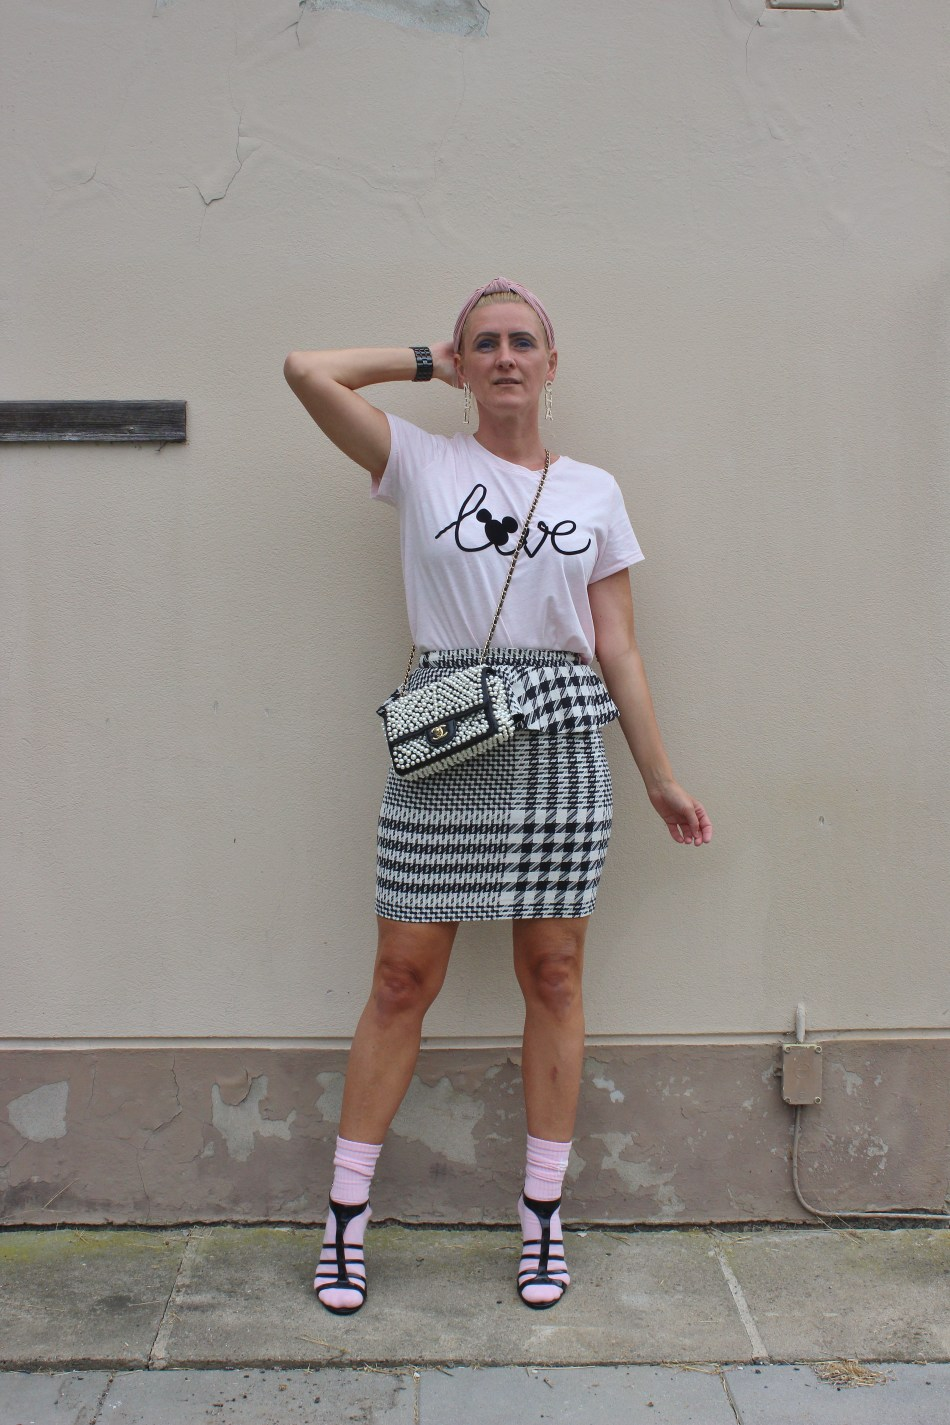 Bloggerparade-Hahnentritt-Muster-Pensilskirt-Fashionsocks-Tennissocken-cool-Perlentasche-Chanel-Disney-T-Shirt-carrieslifestyle-Tamara-Prutsch